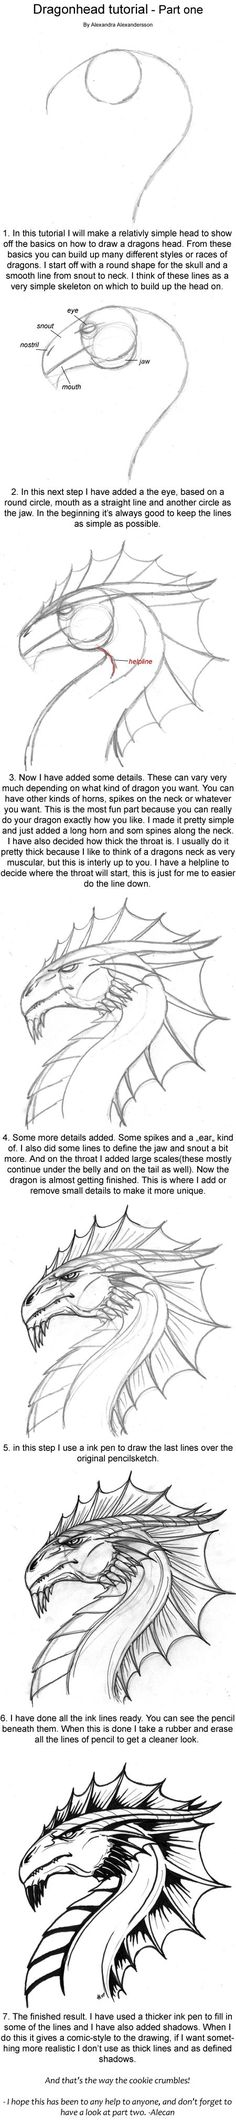 Dragonhead Tutorial part one by alecan.deviantart.com on @deviantART: